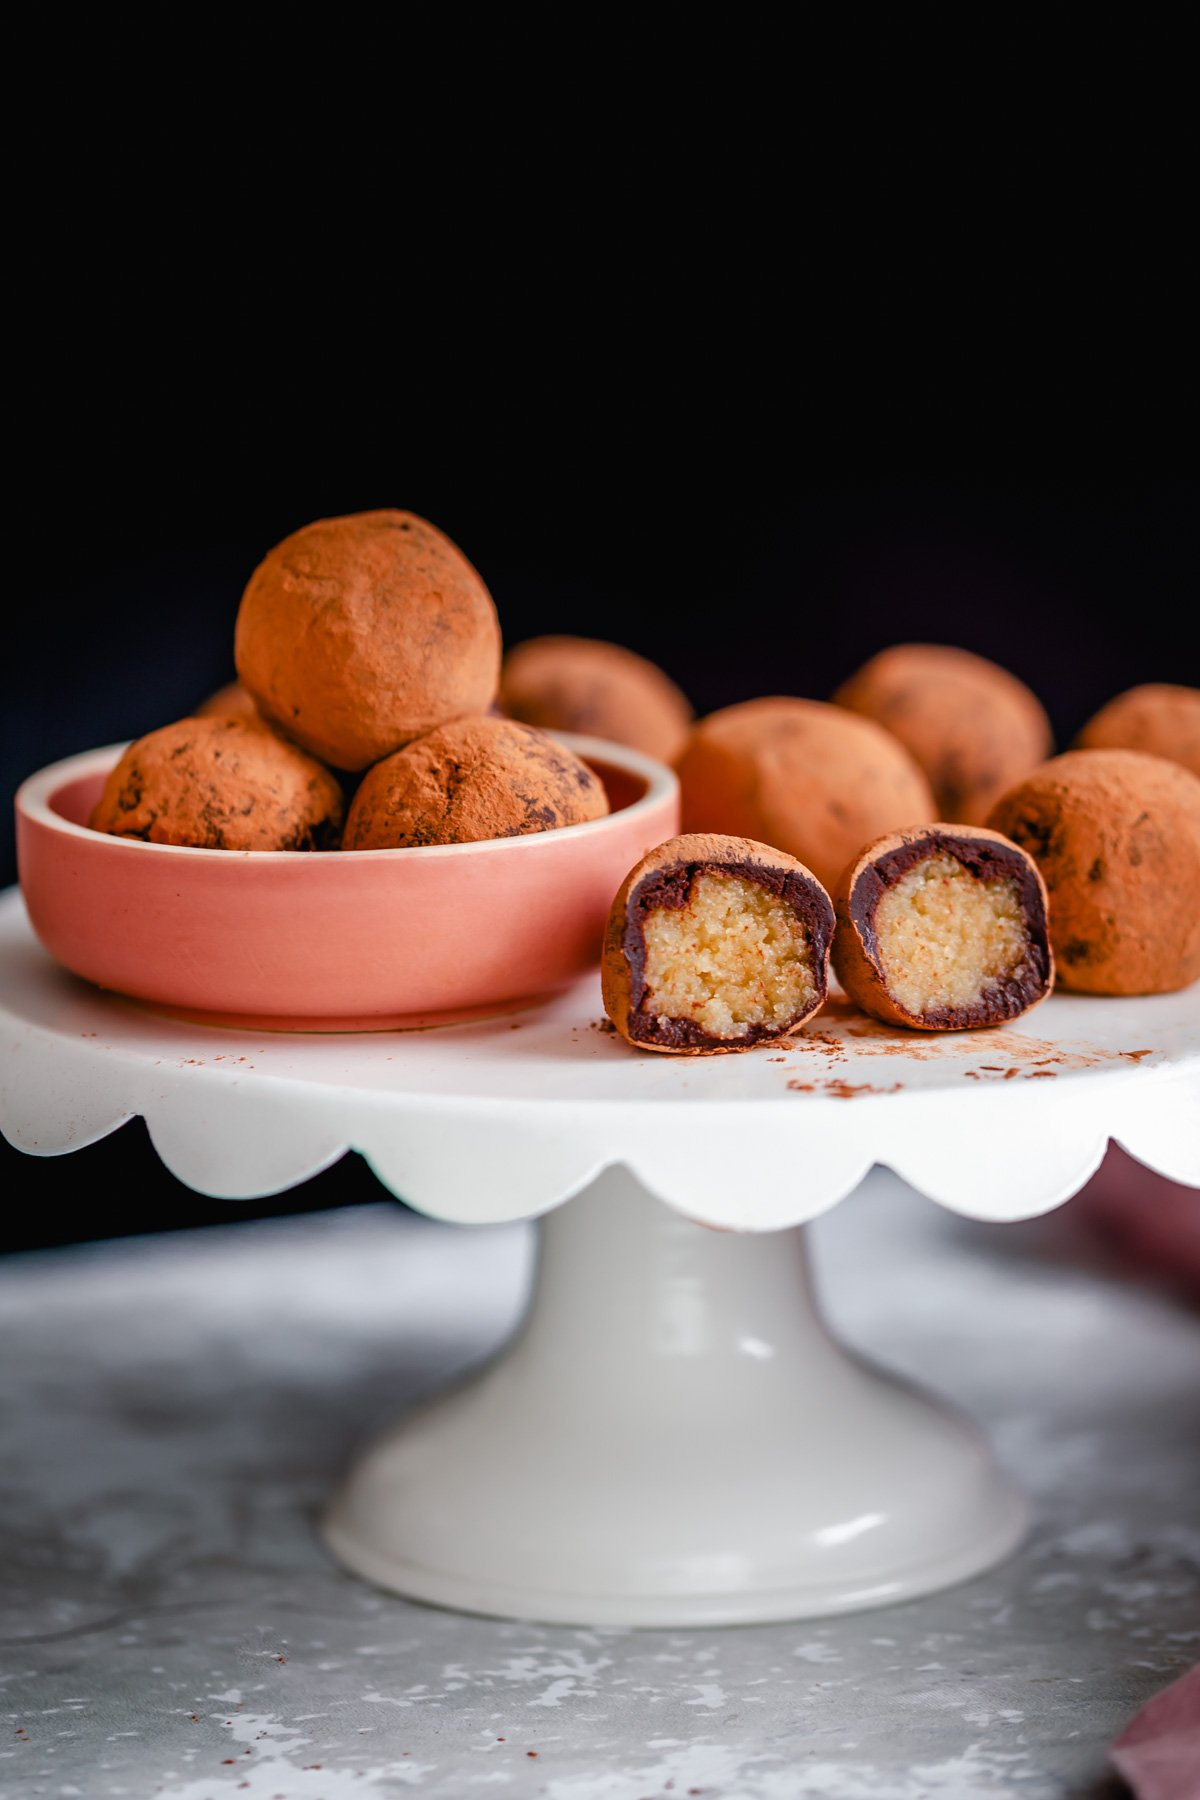 vegan tiramisu truffles on a cake stand with one truffle cut open